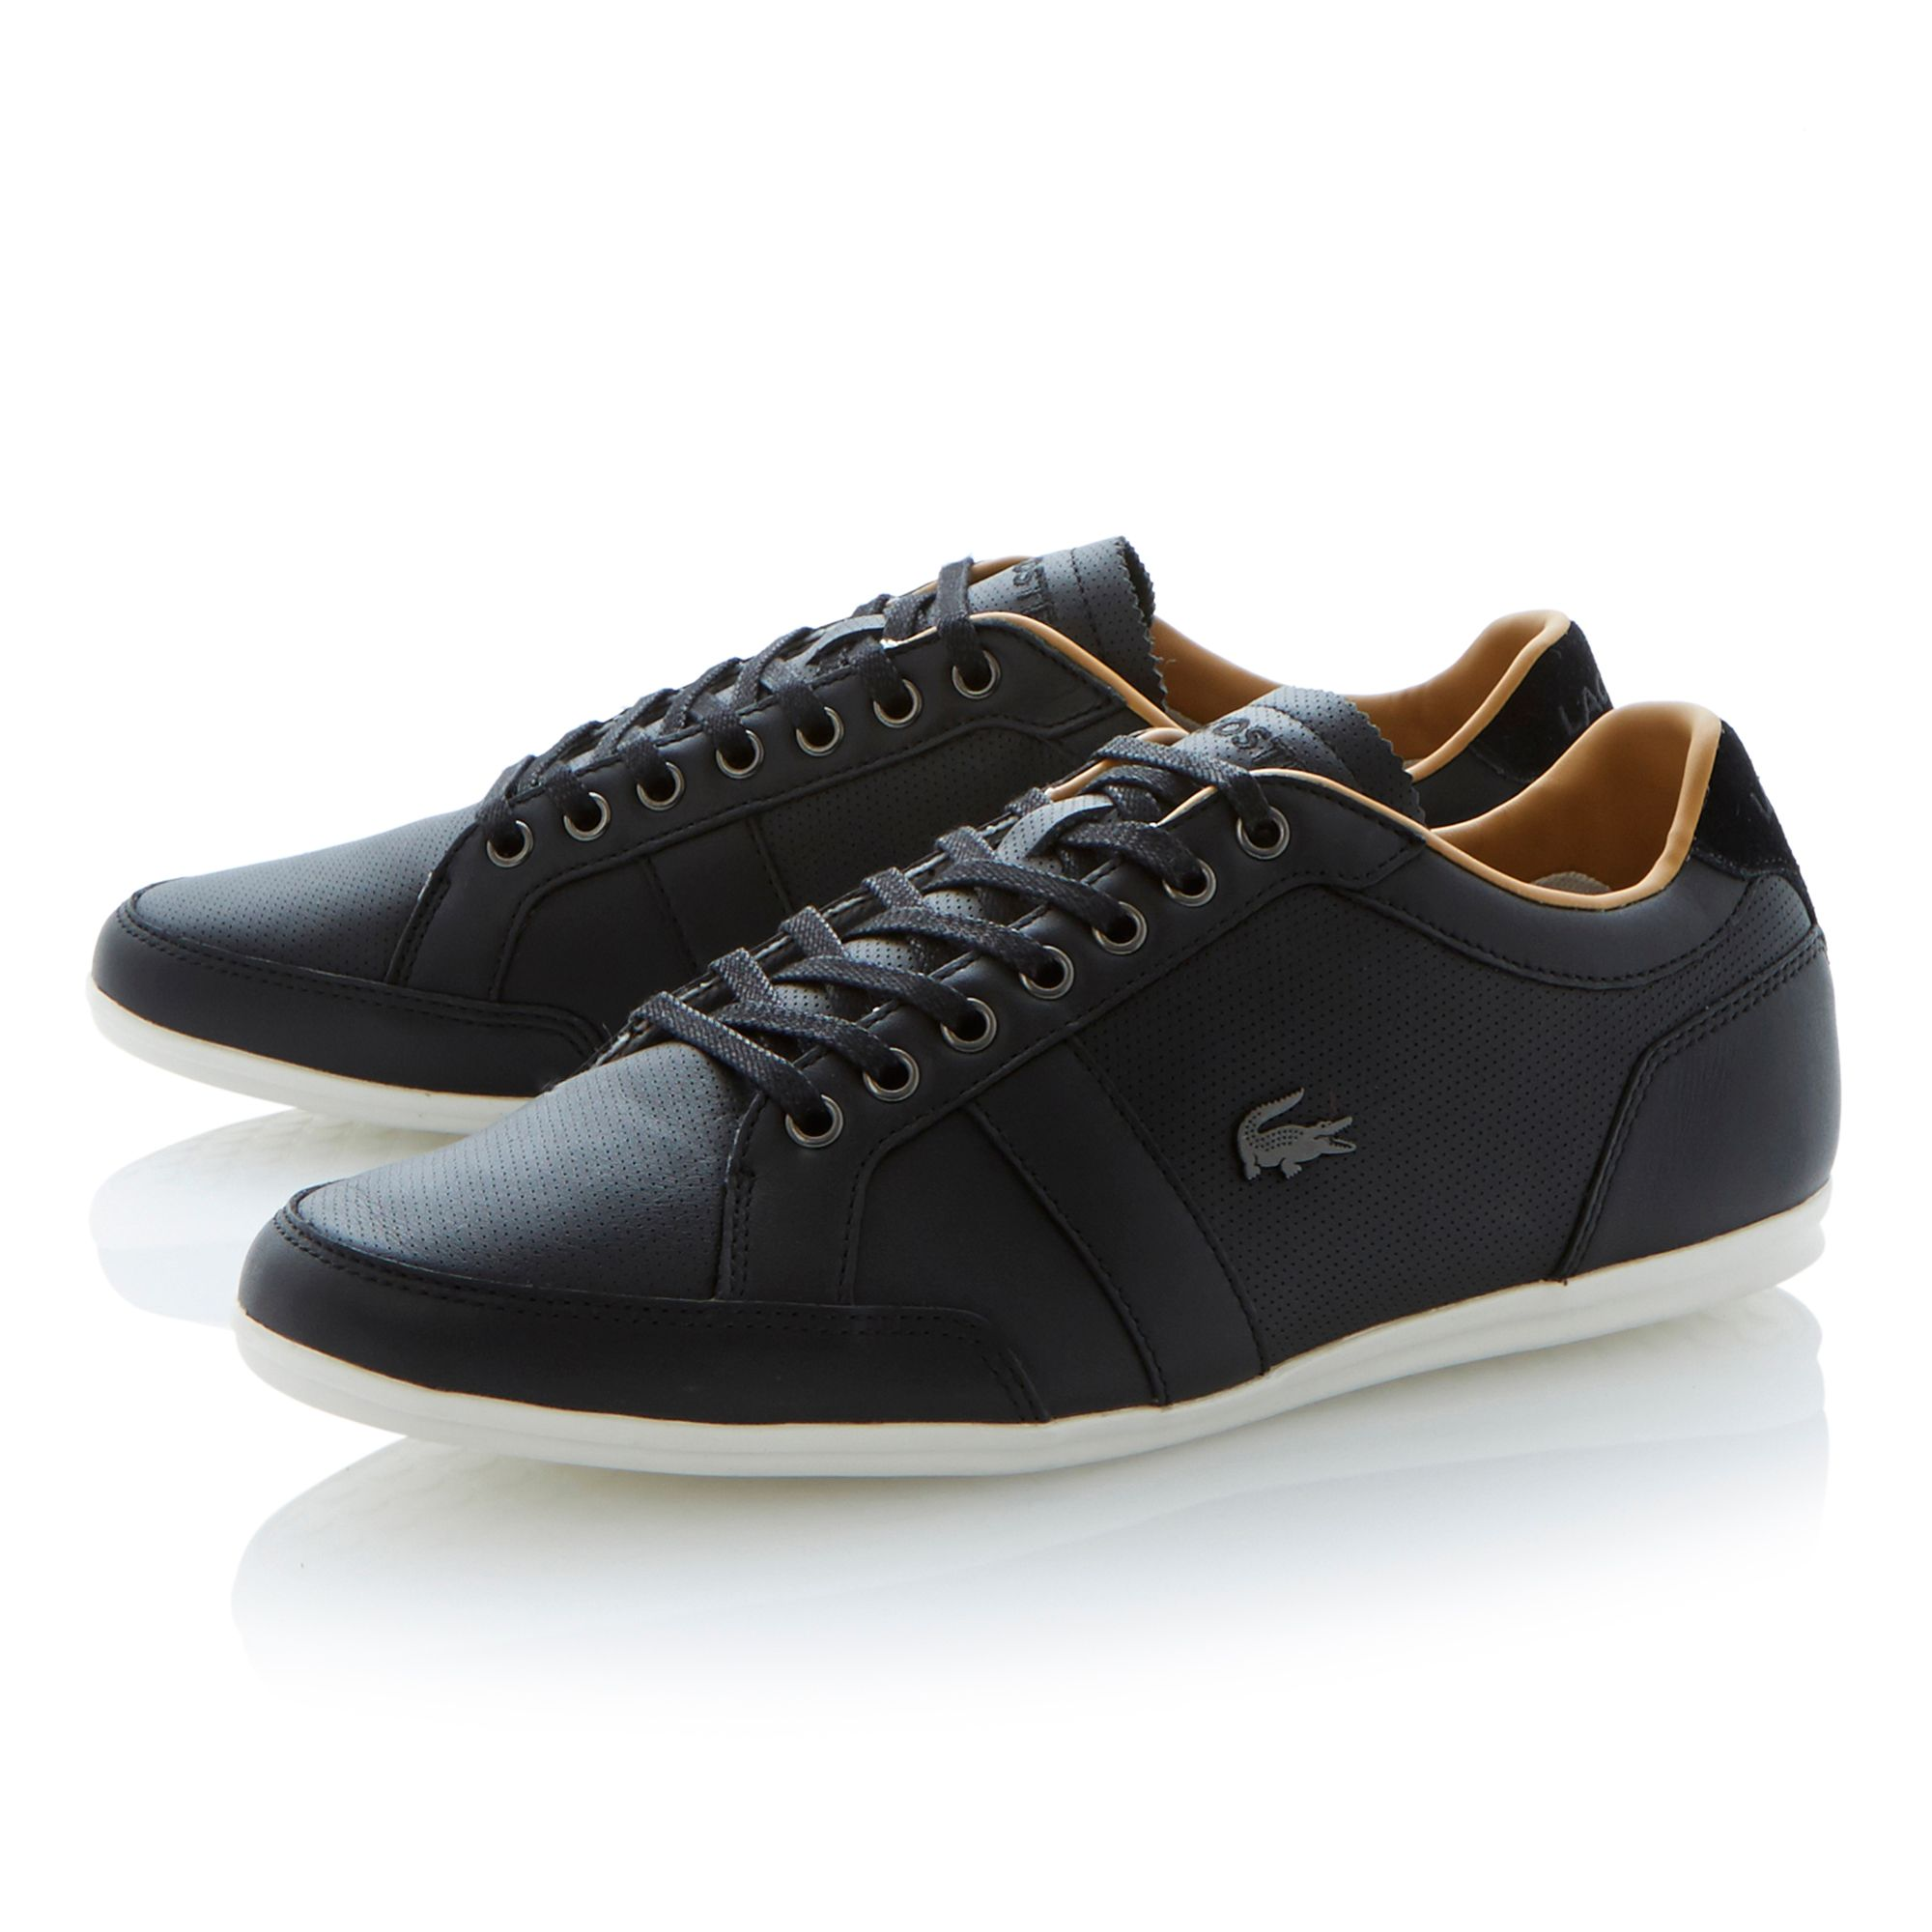 Keel frs boat-style casual lace up shoe